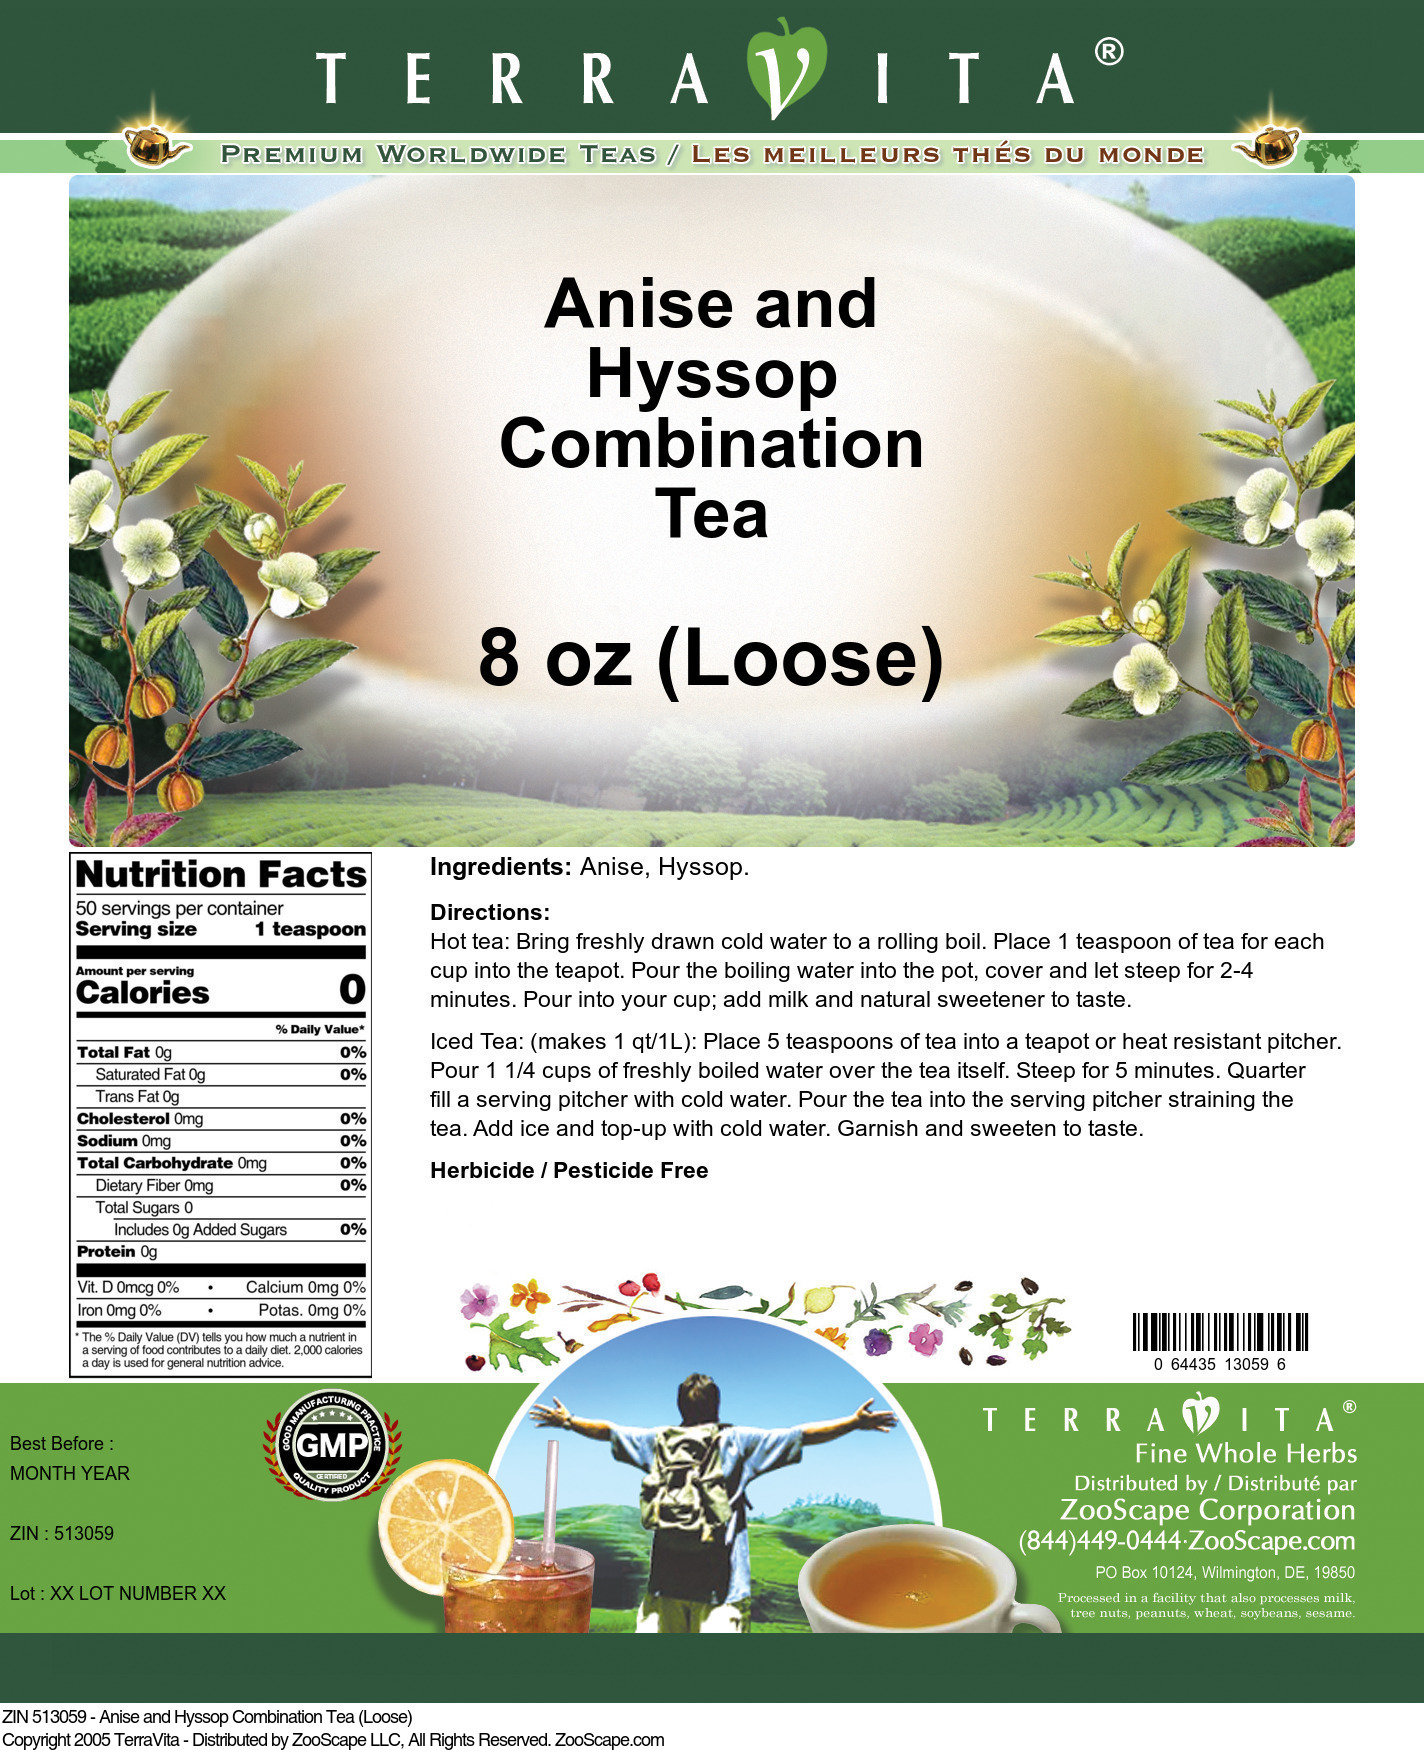 Anise and Hyssop Combination Tea (Loose)